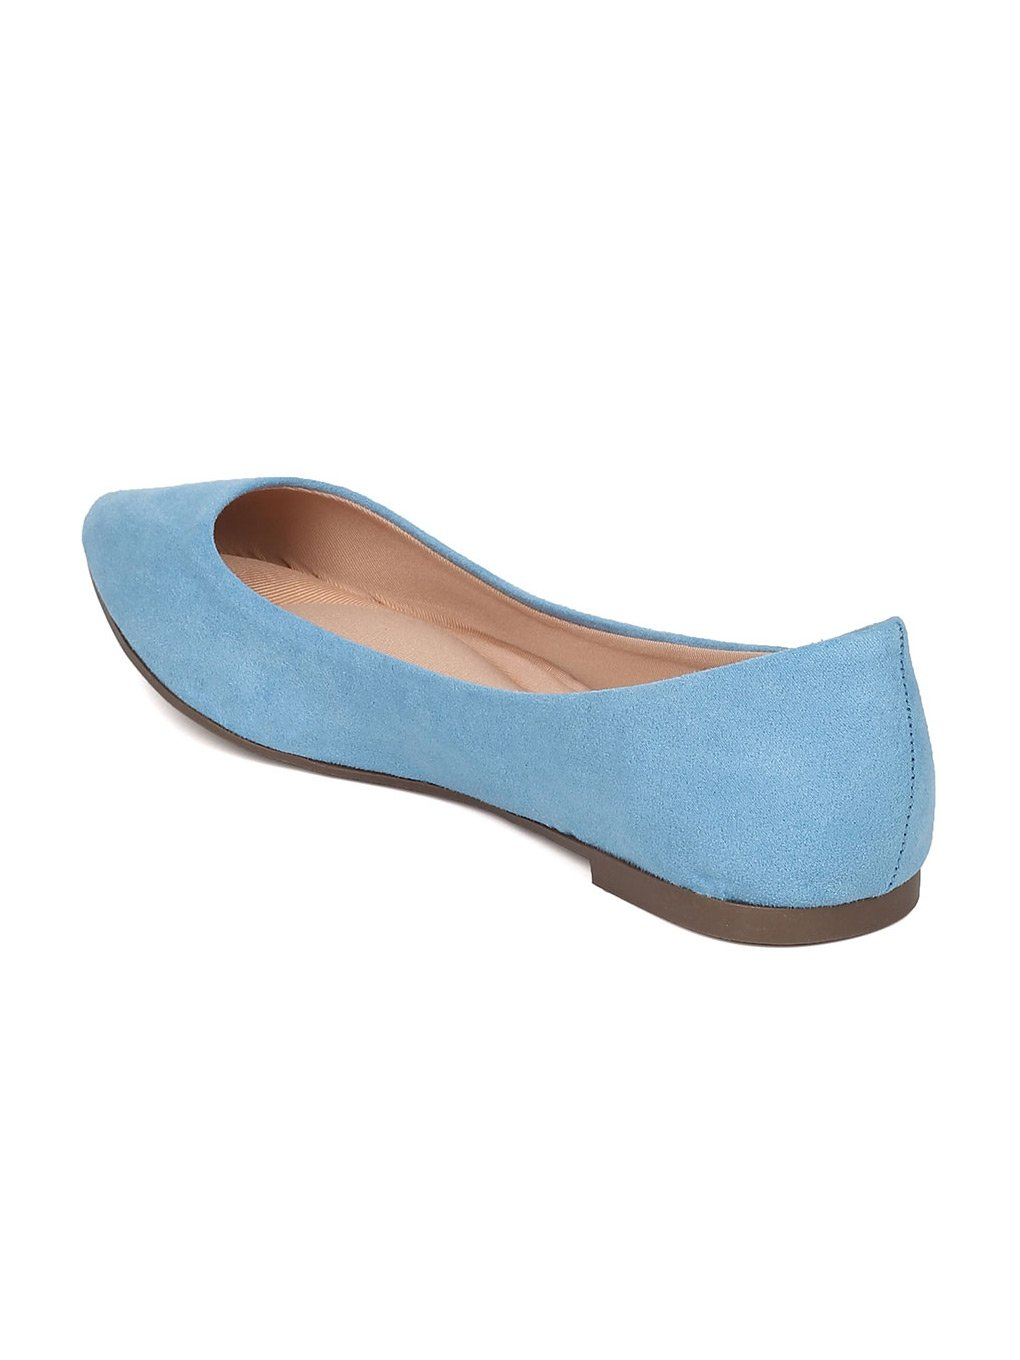 Breckelle's Women Faux Suede Pointy Toe Ballet Flat GH13 B06XYTFD21 7.5 M US Blue